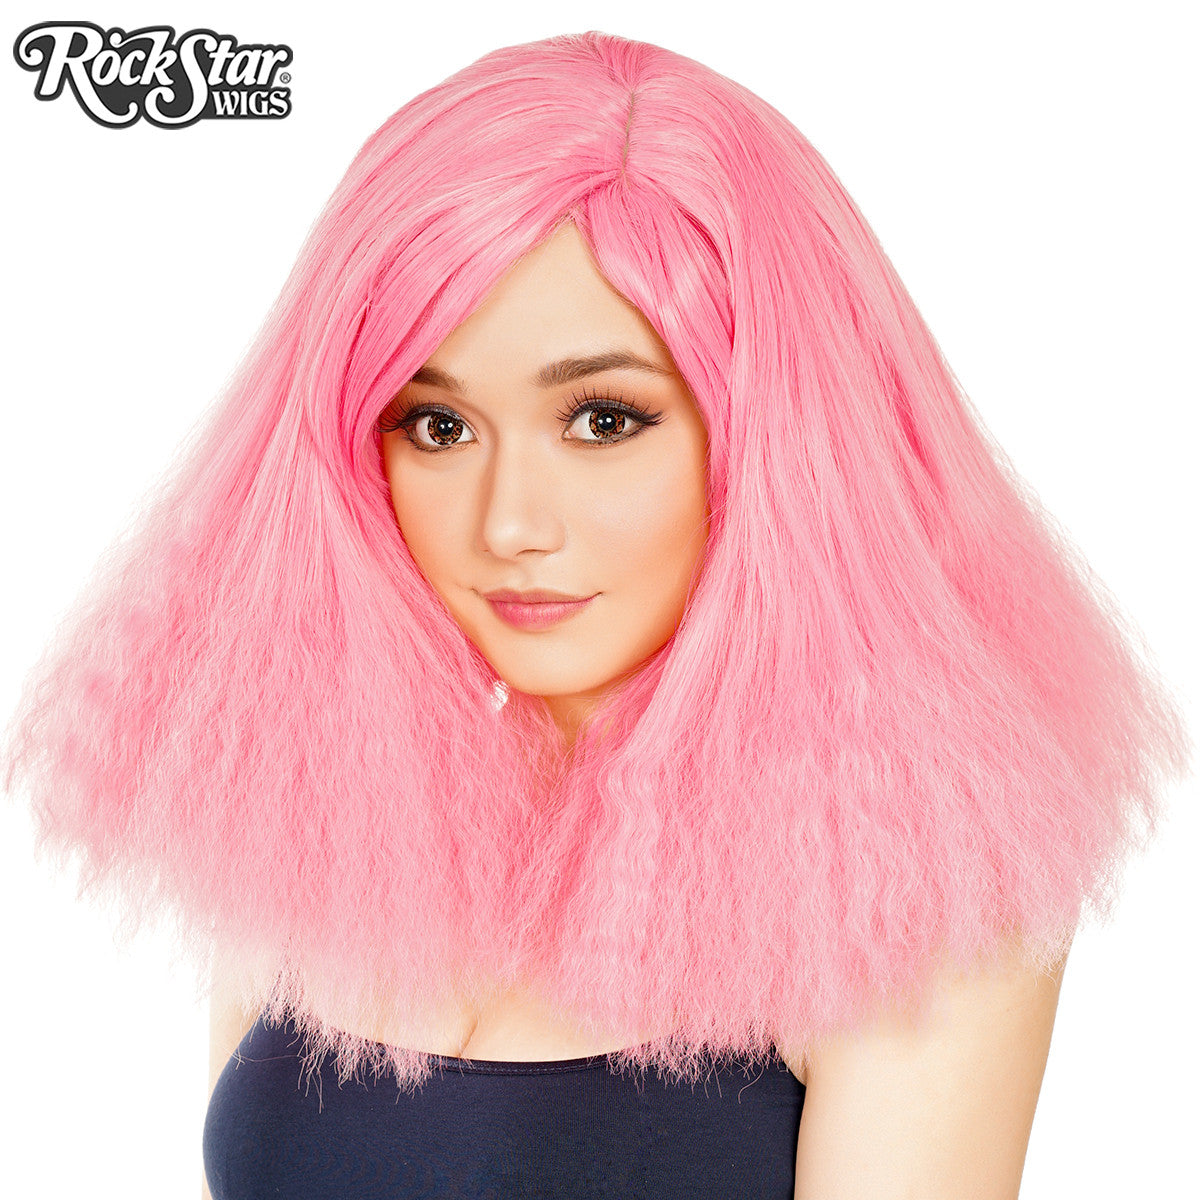 RockStar Wigs® <br> Dynamite™ Collection - Pink Sparks -00167